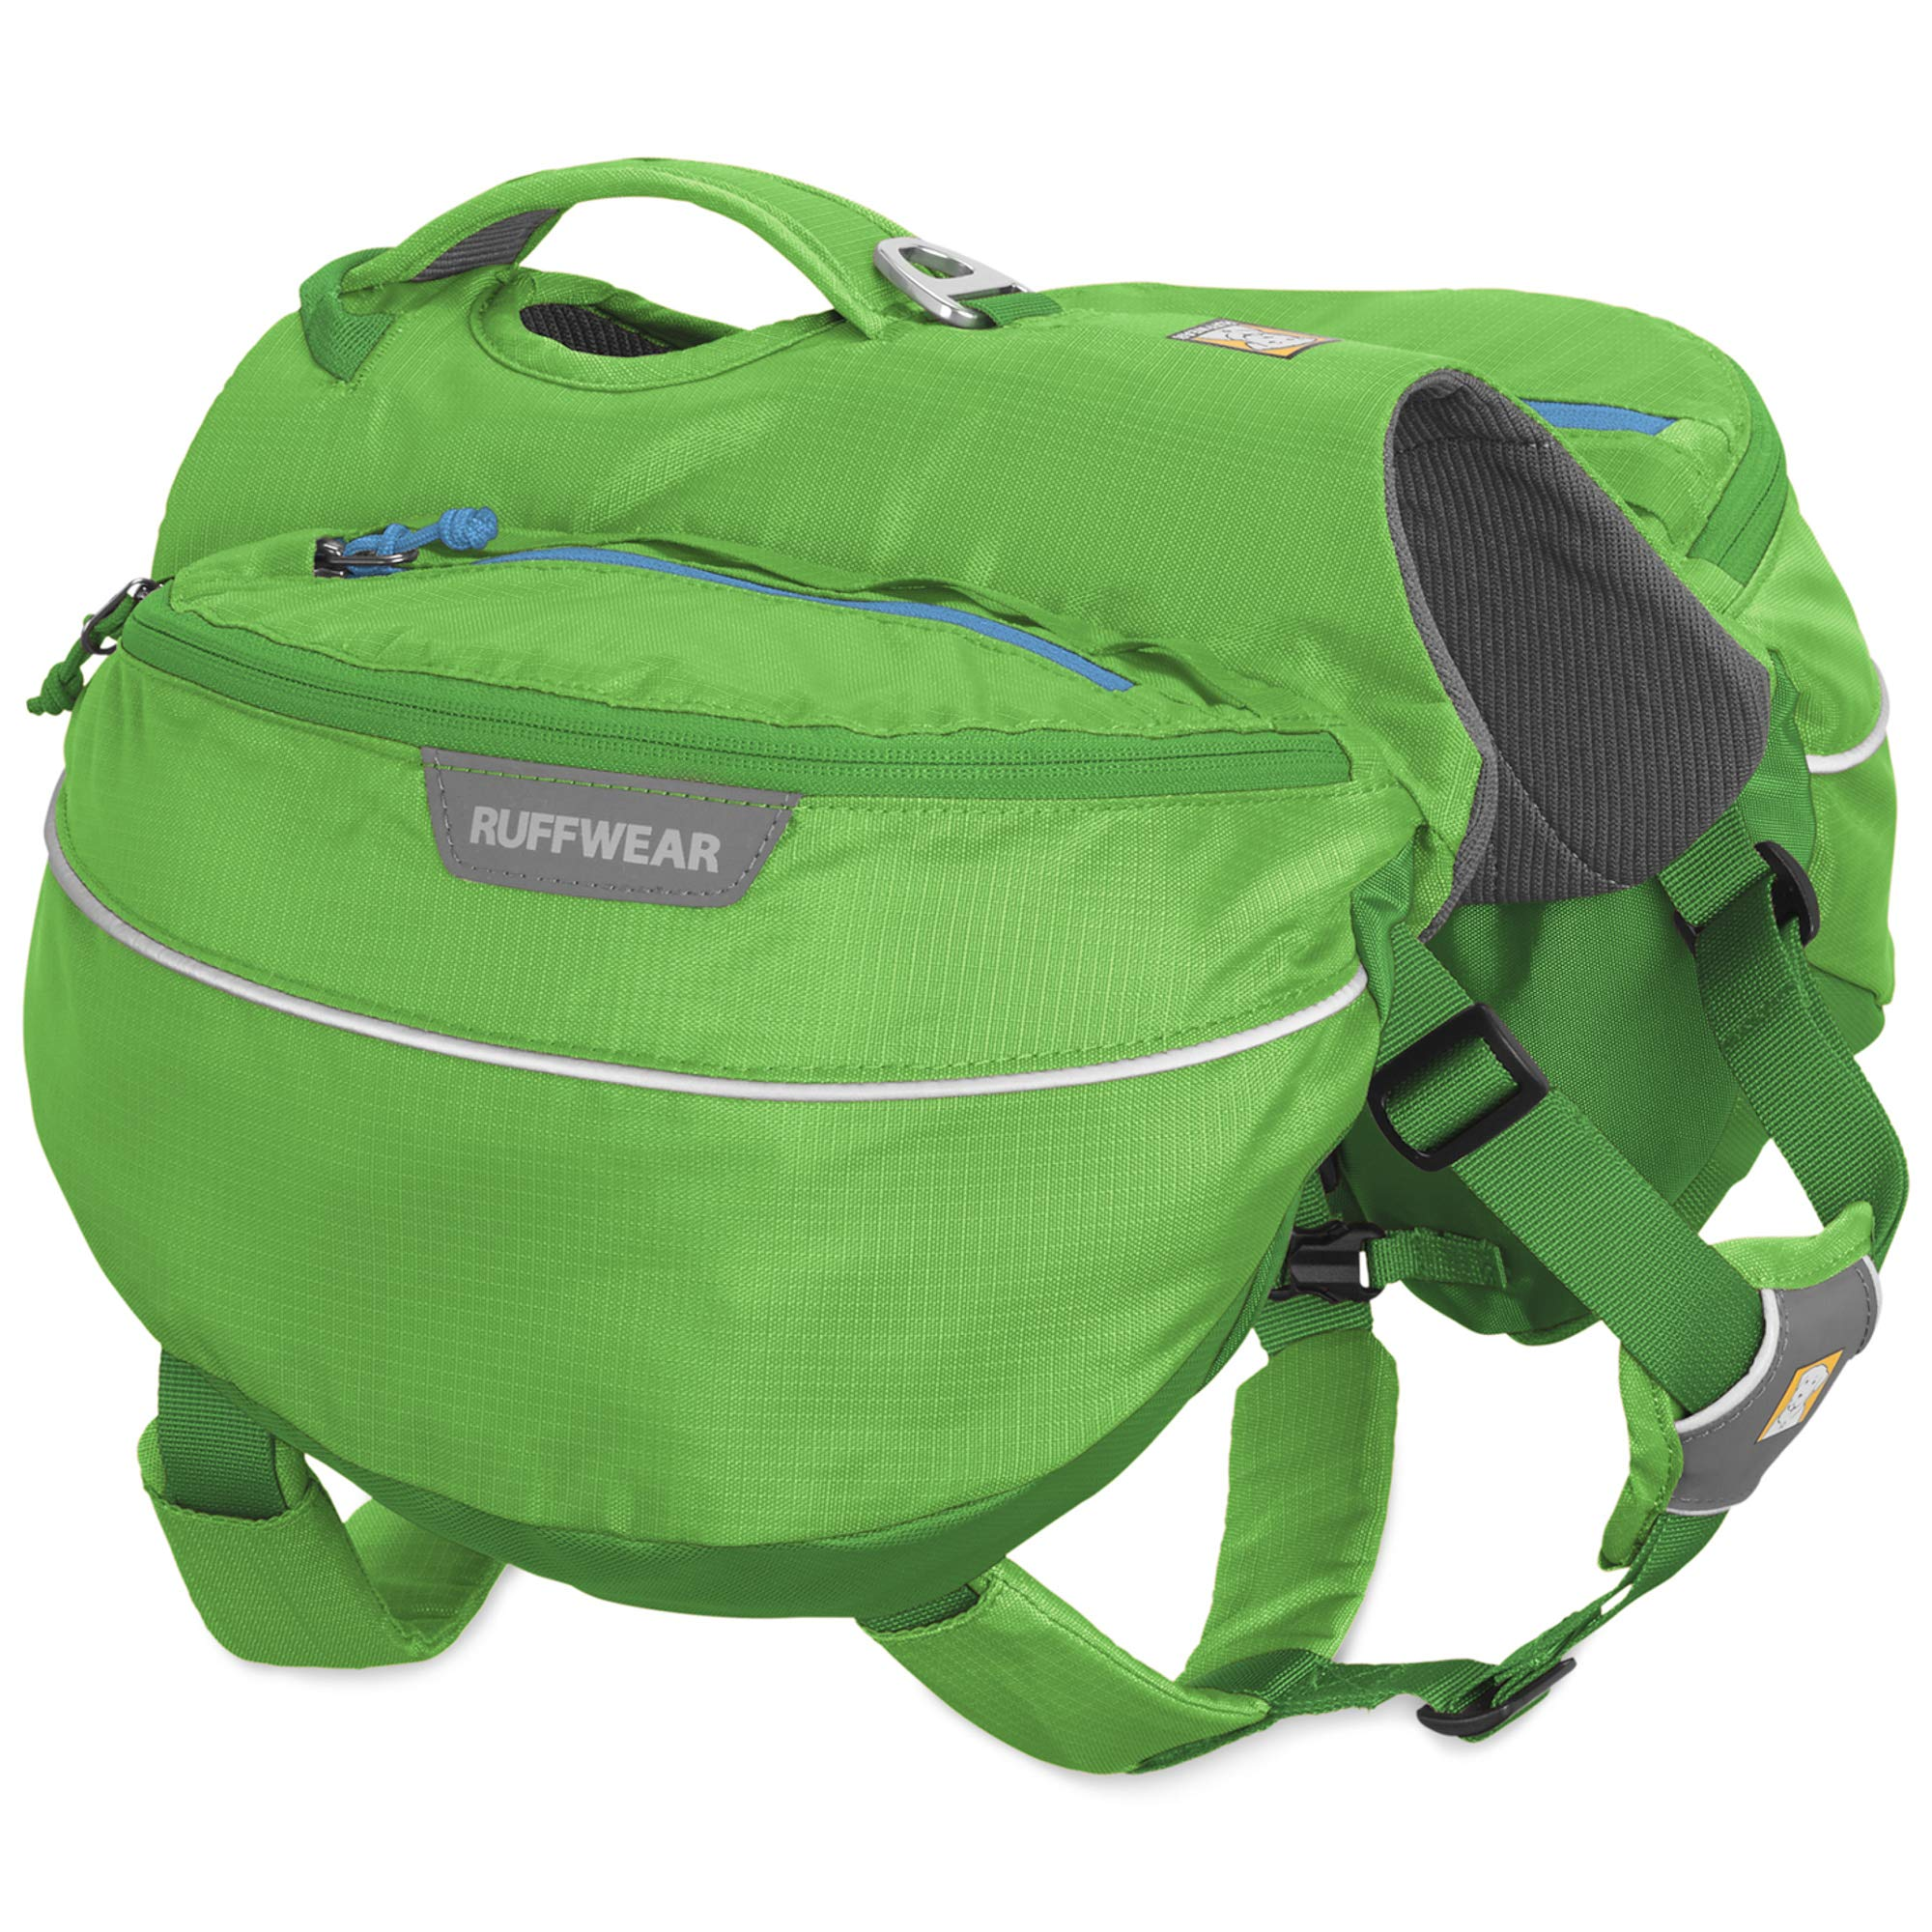 RUFFWEAR Hiking Pack for Dogs, Medium Sized Breeds, Adjustable Fit, Size: Medium, Meadow Green, Approach Pack, 50102-345M by RUFFWEAR